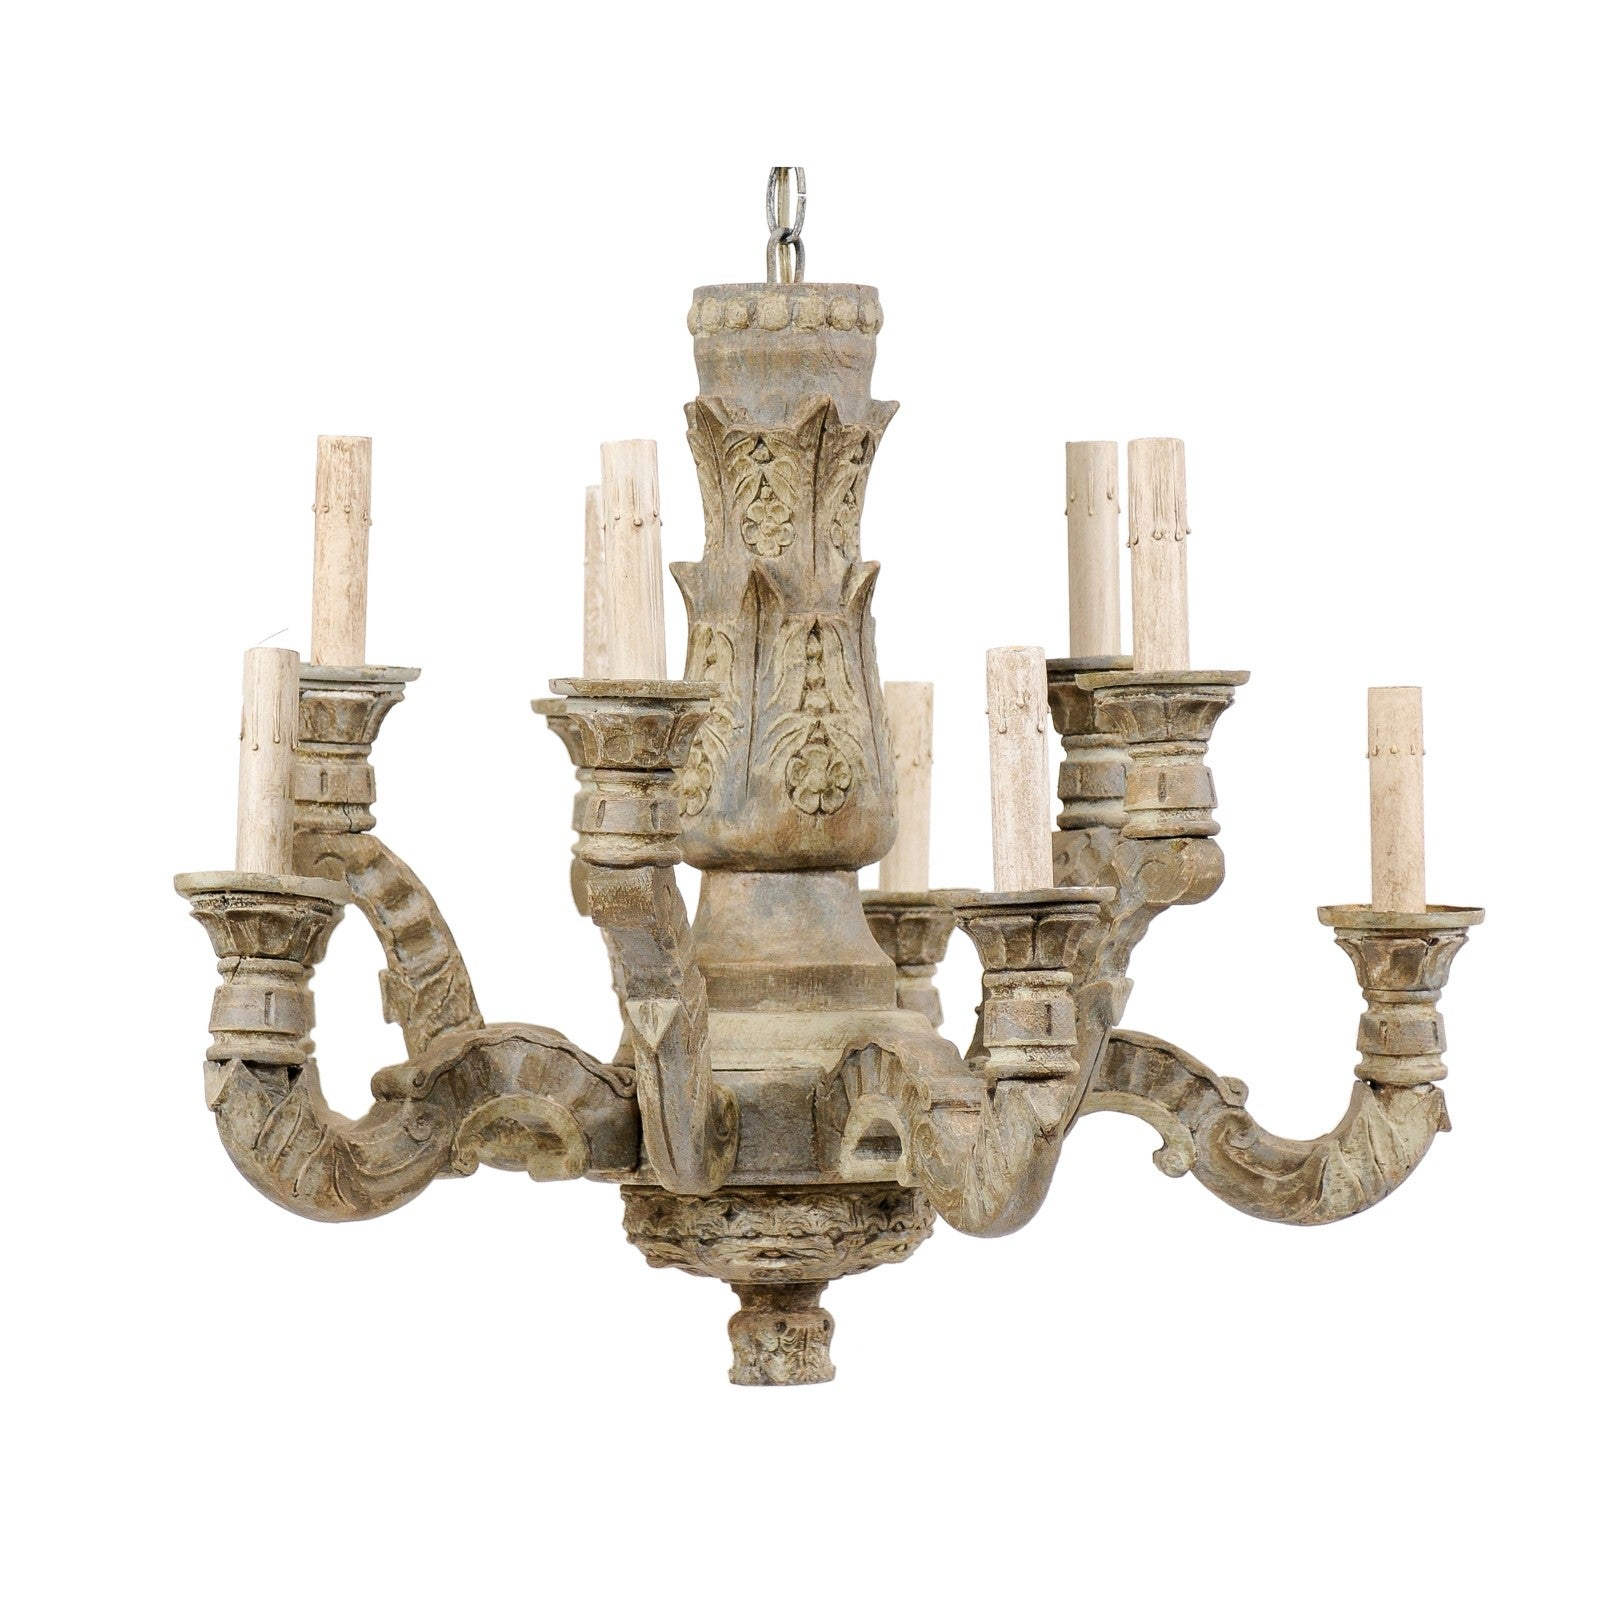 A French Vintage Ten-Light Carved and Painted Wood Soft Grey Chandelier